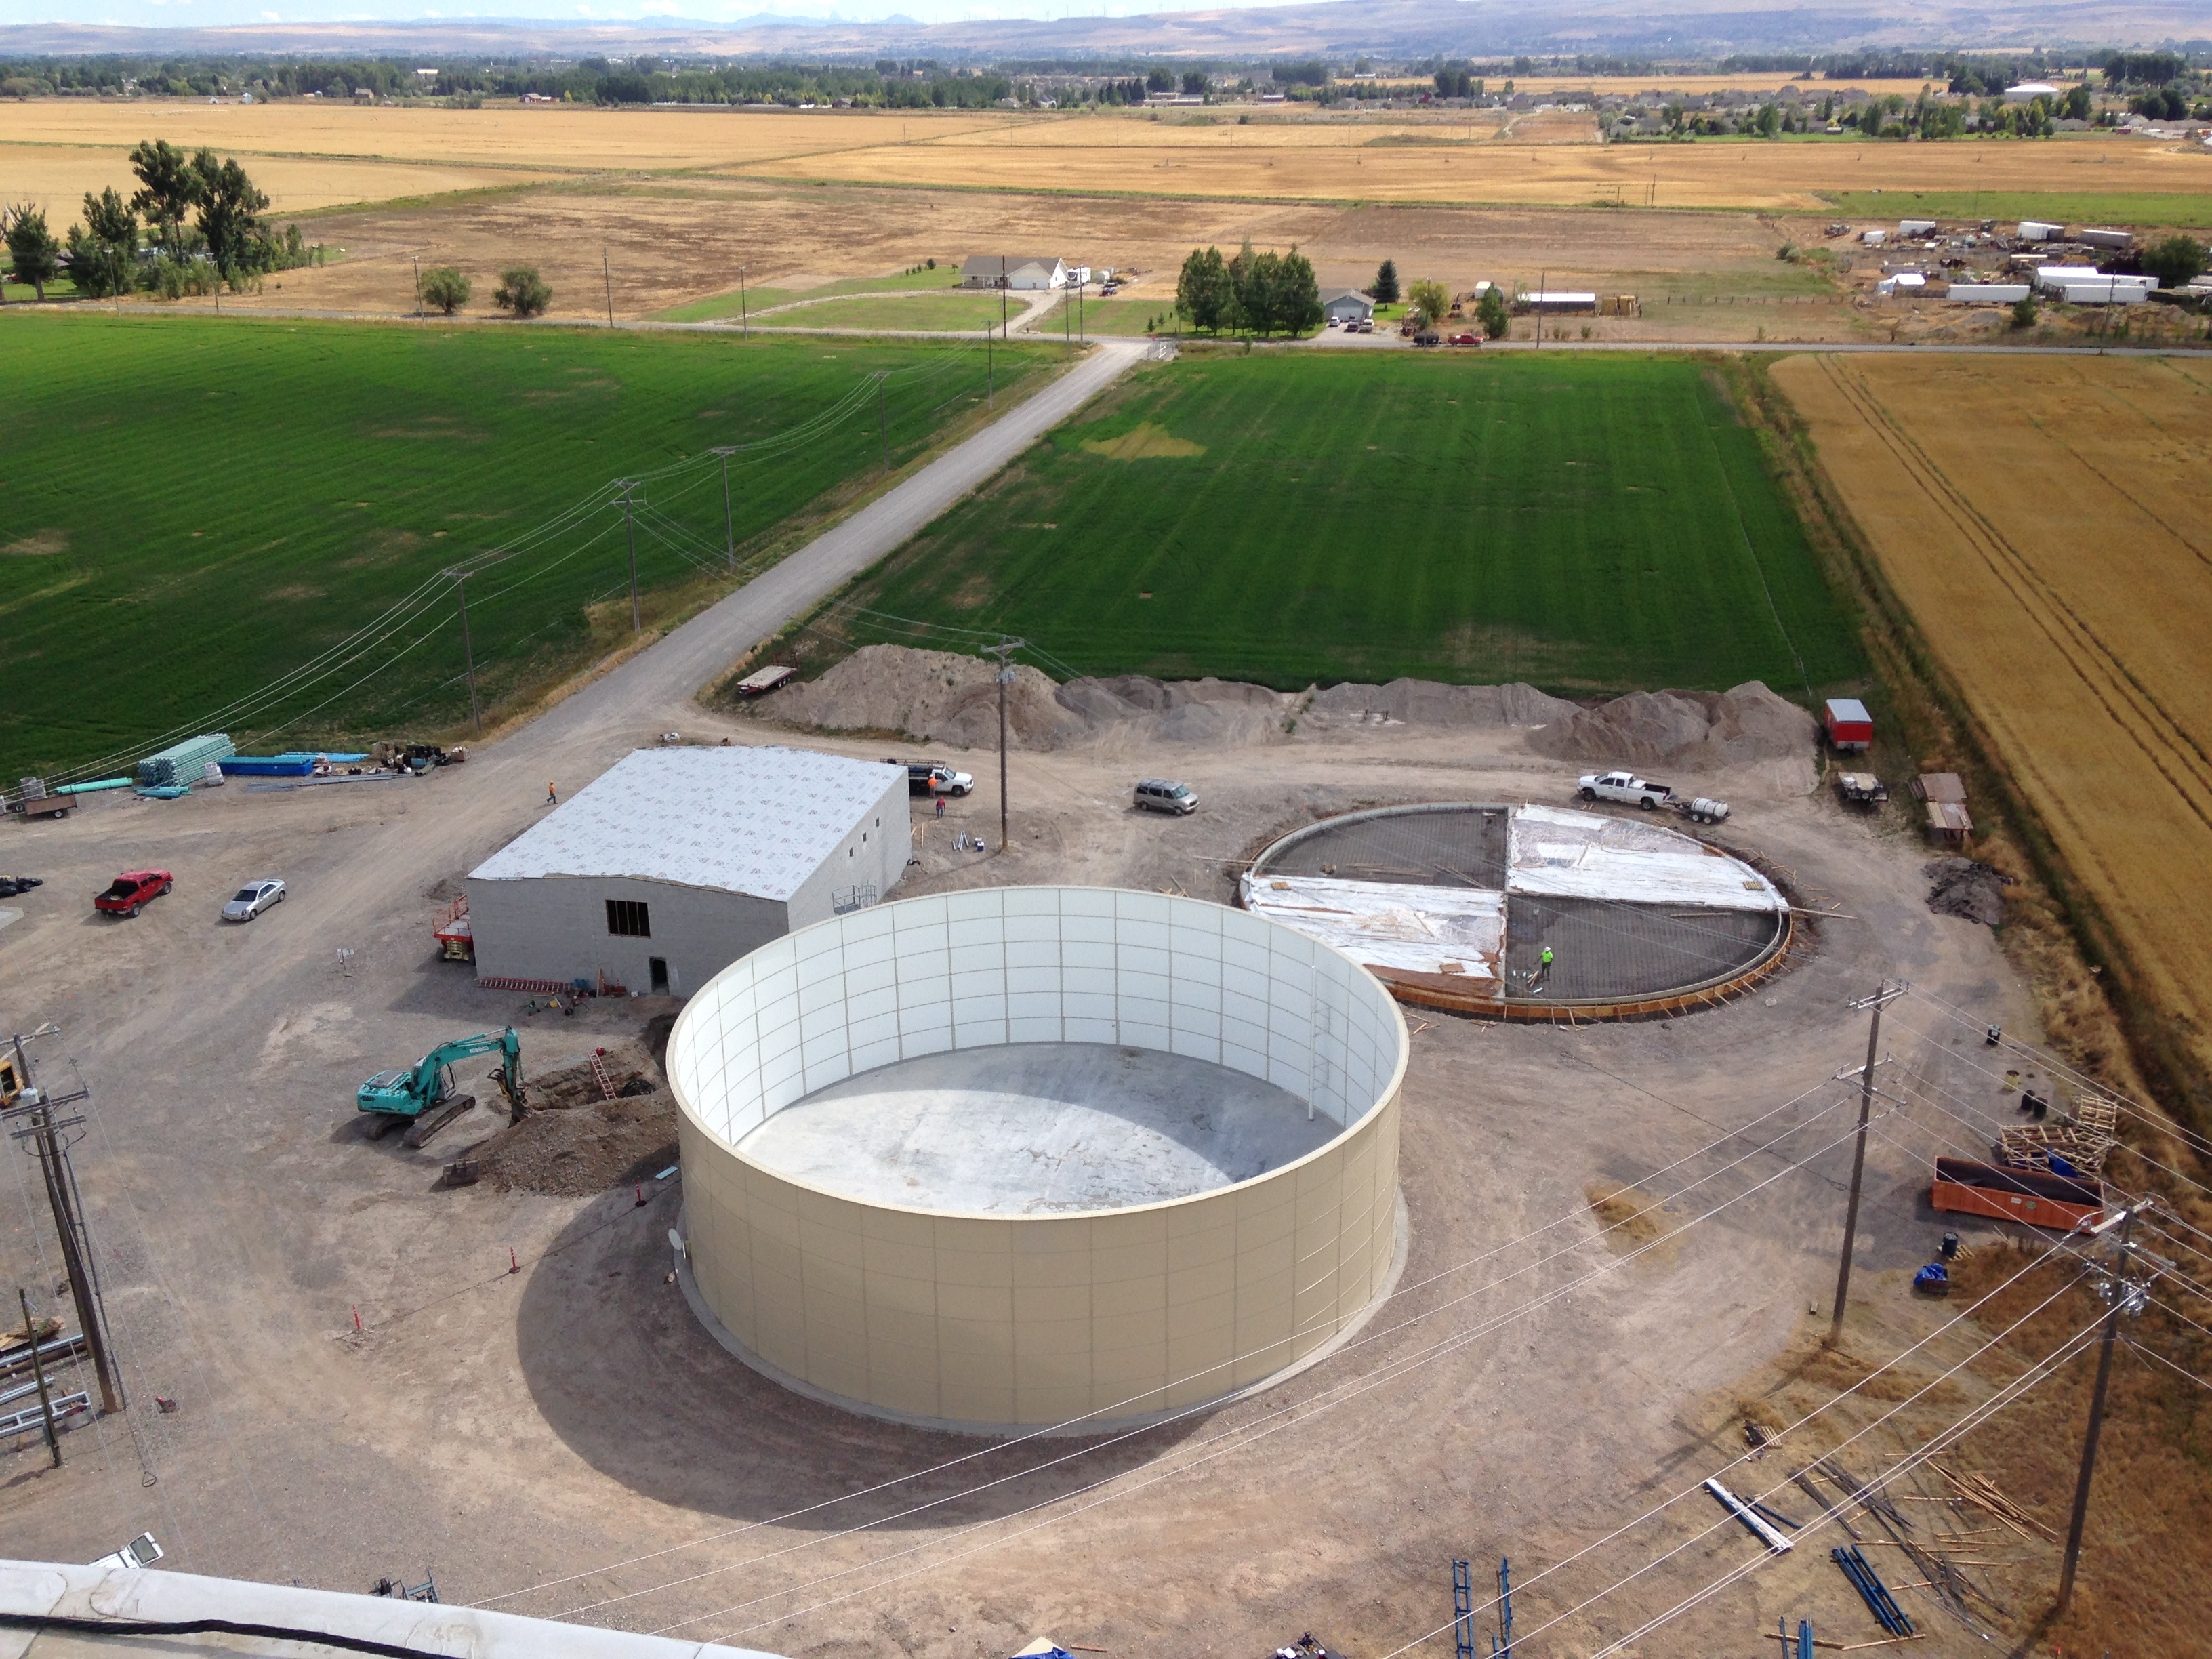 Wastewater Building and Tanks